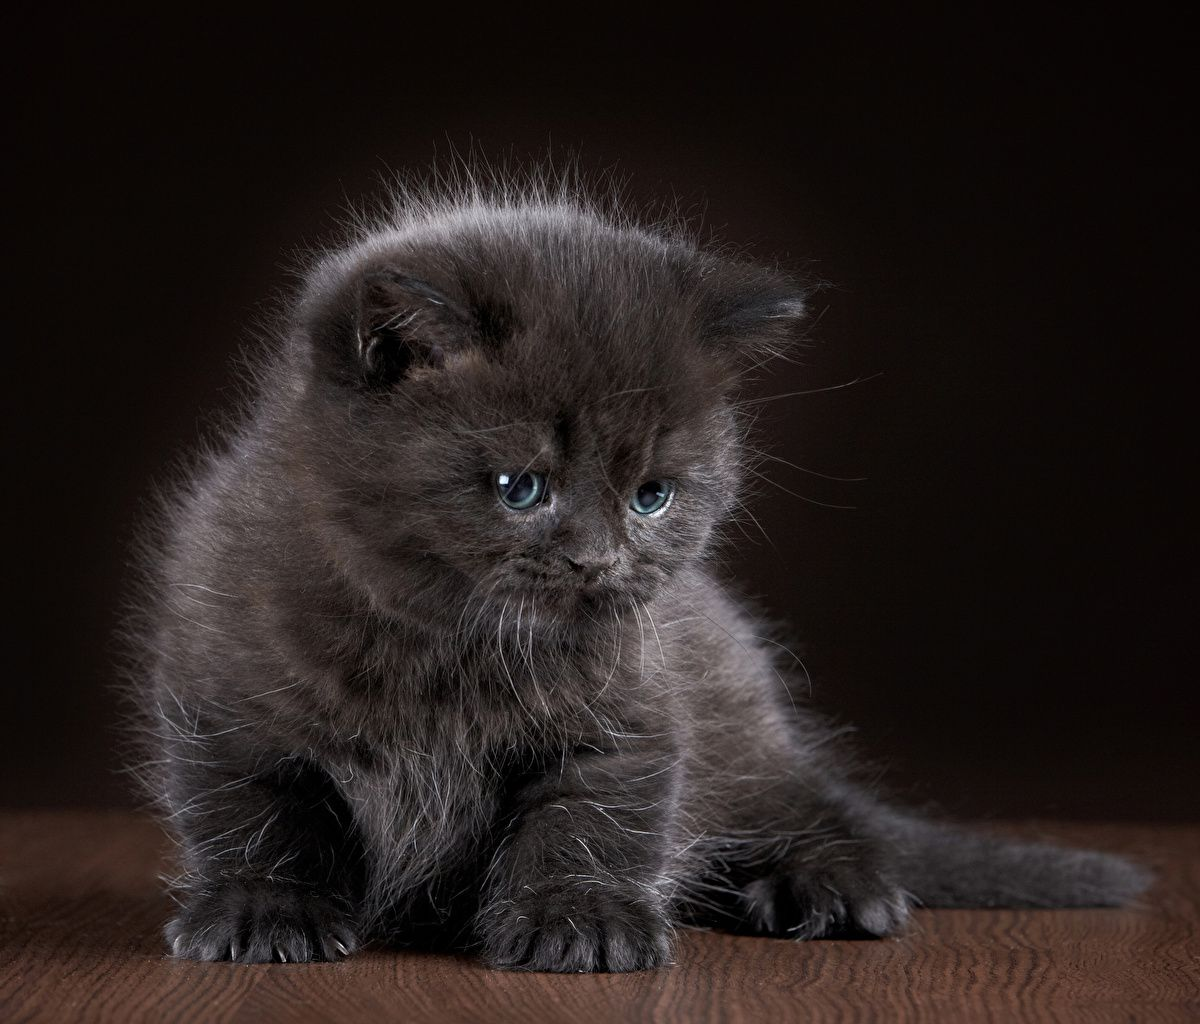 Chat Domestique Chatons Gris Animaux Chaton Gris Cute Kittens Animaux